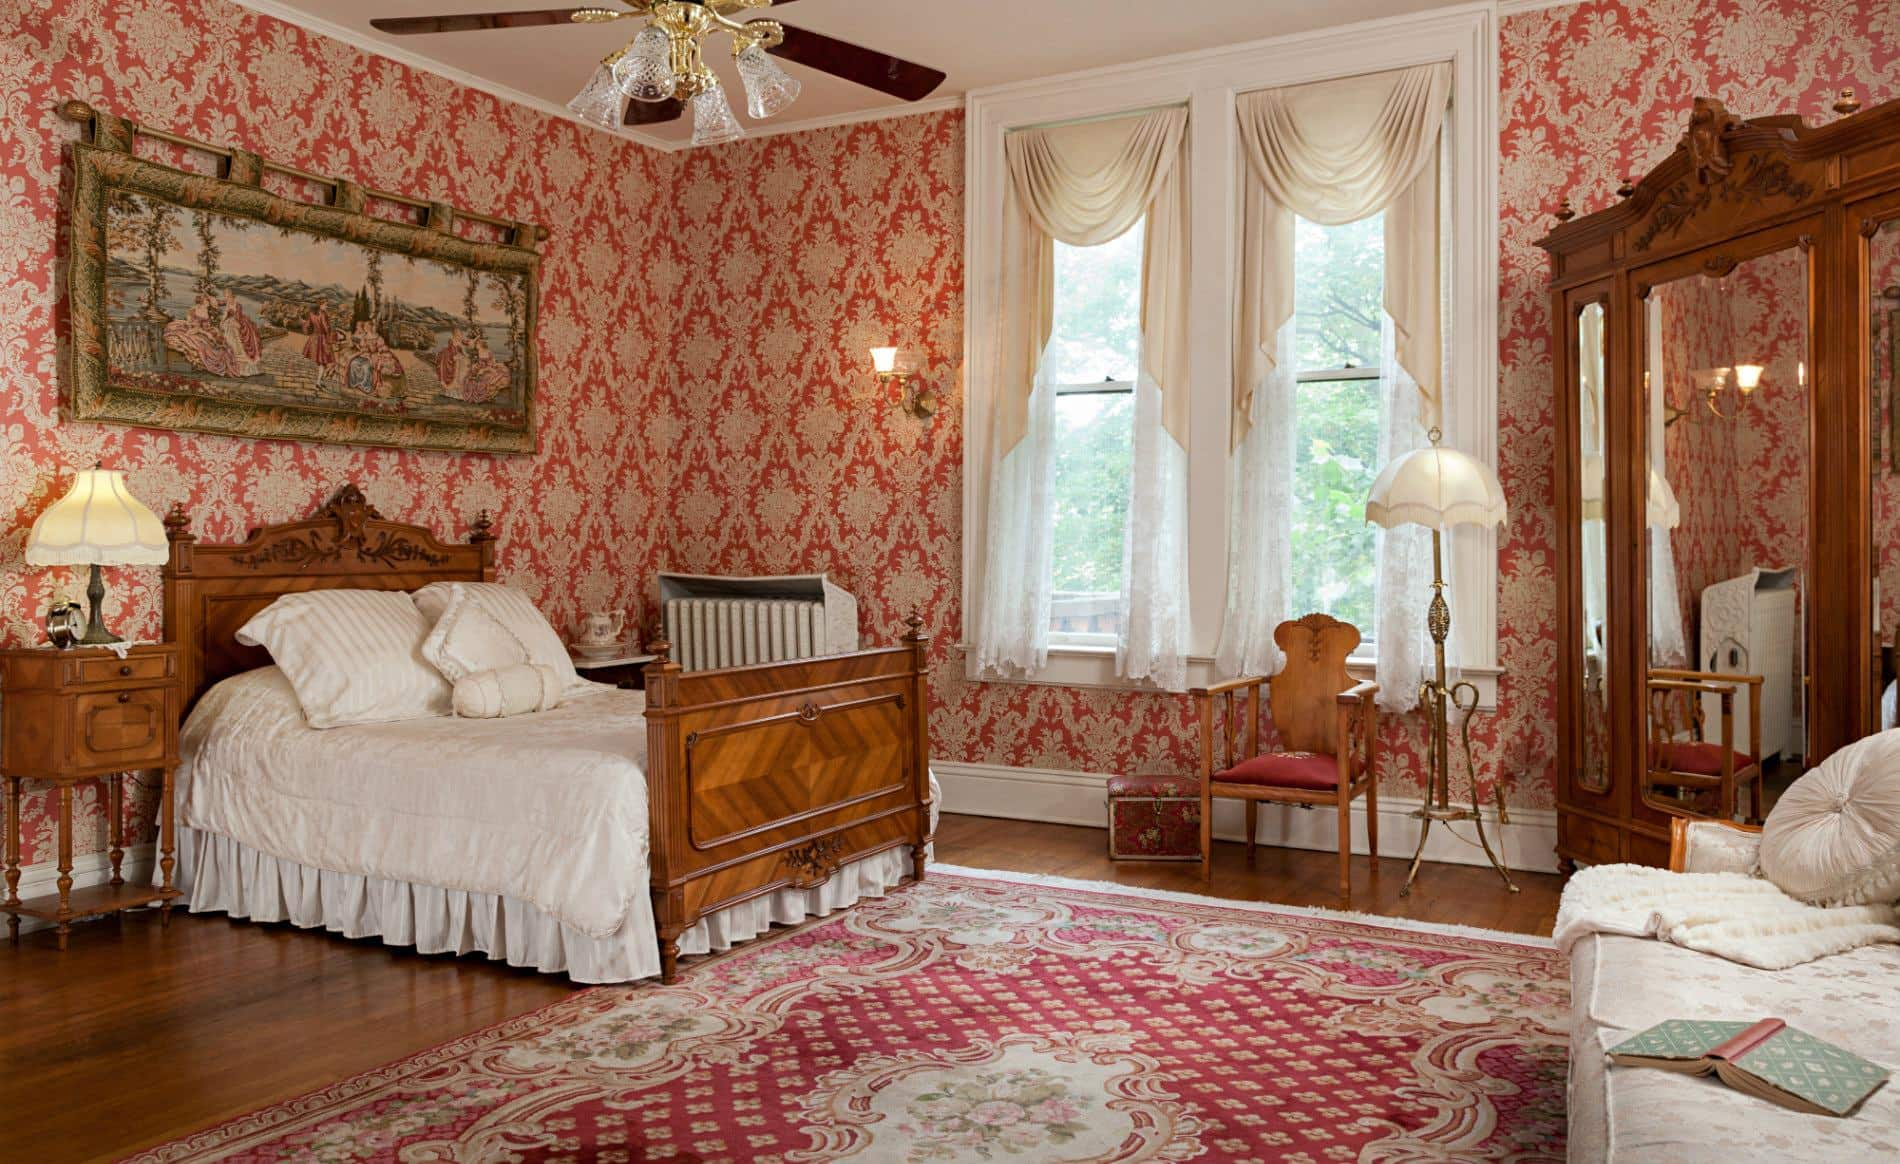 spacious room with red and white papered walls, wood floors, wood carved bed with white bedding, and large mirrored cabinet